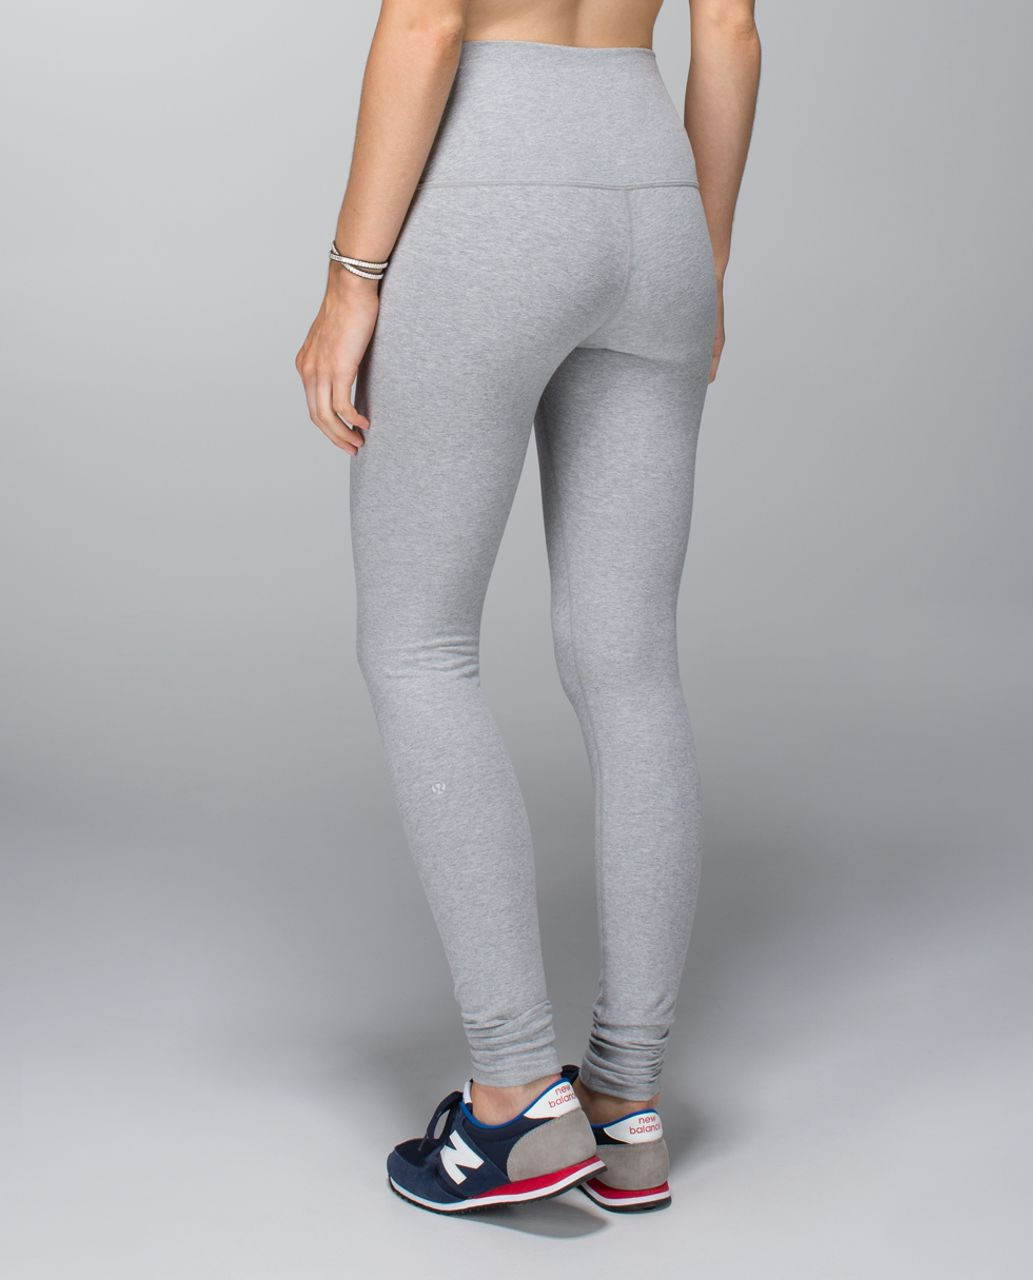 Lululemon Wunder Under Pant (Roll Down) *Cotton - Heathered Medium Grey